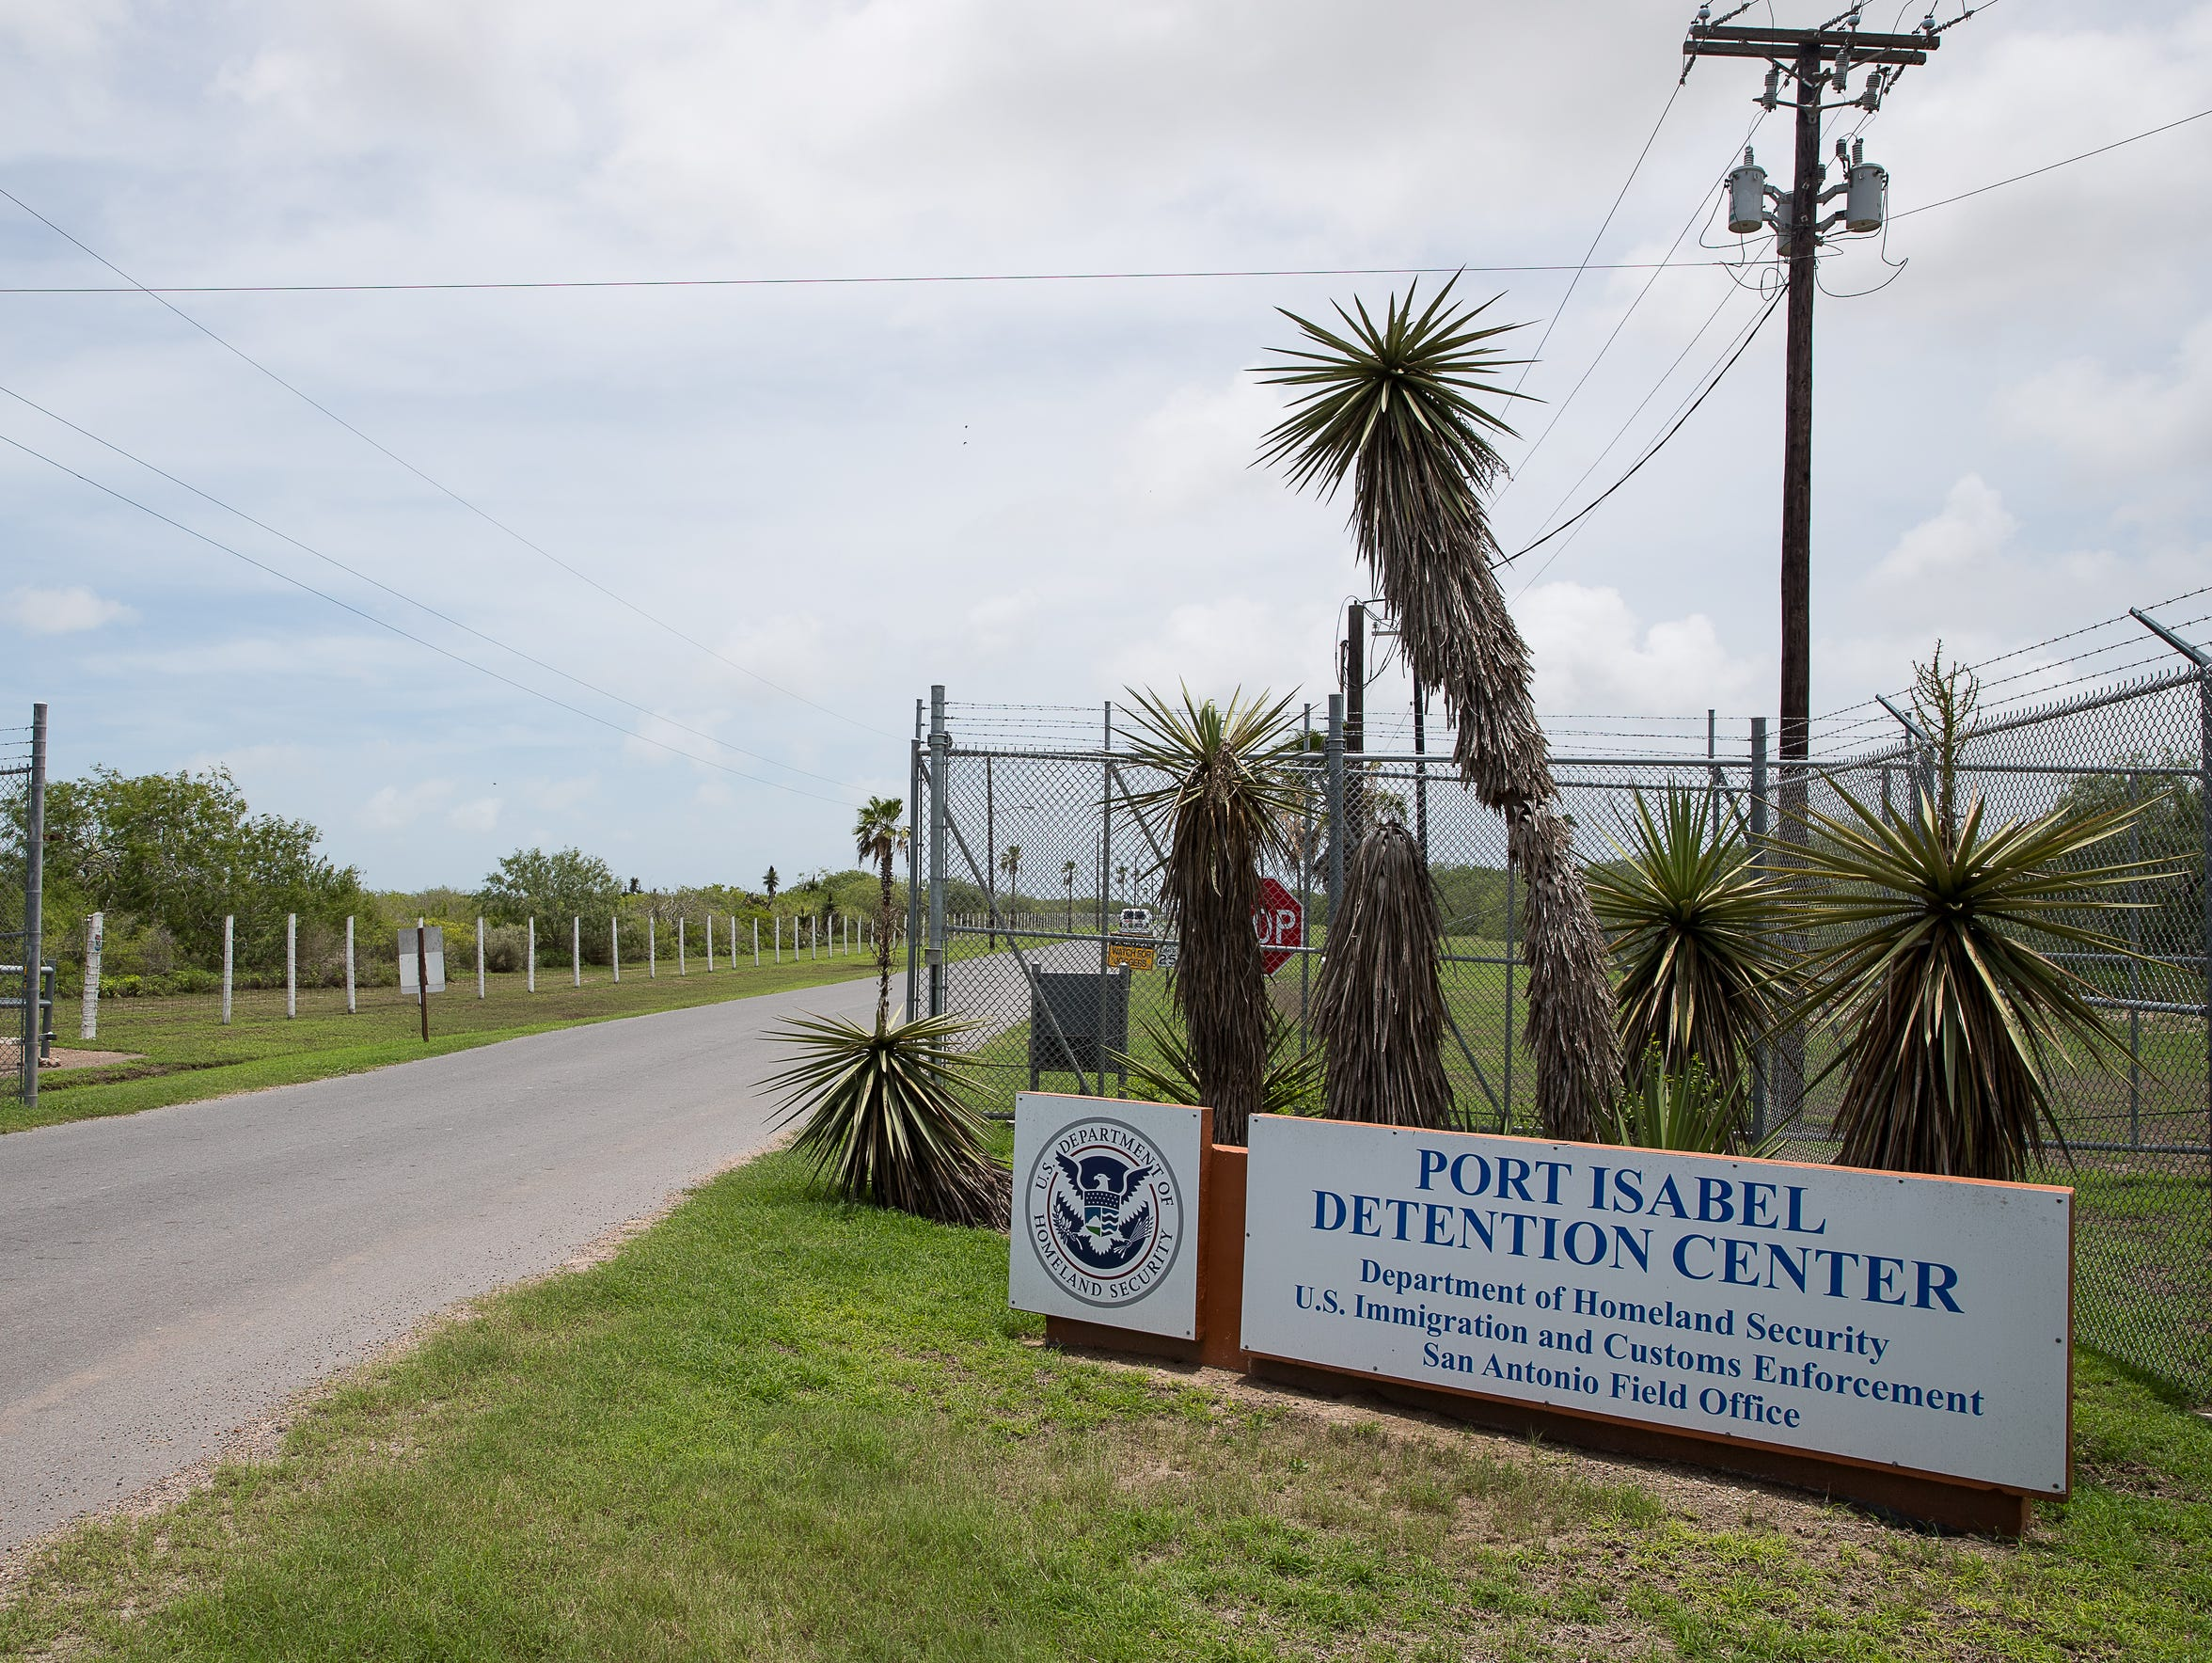 The Port Isabel Processing Center in Los Fresnos, Texas,